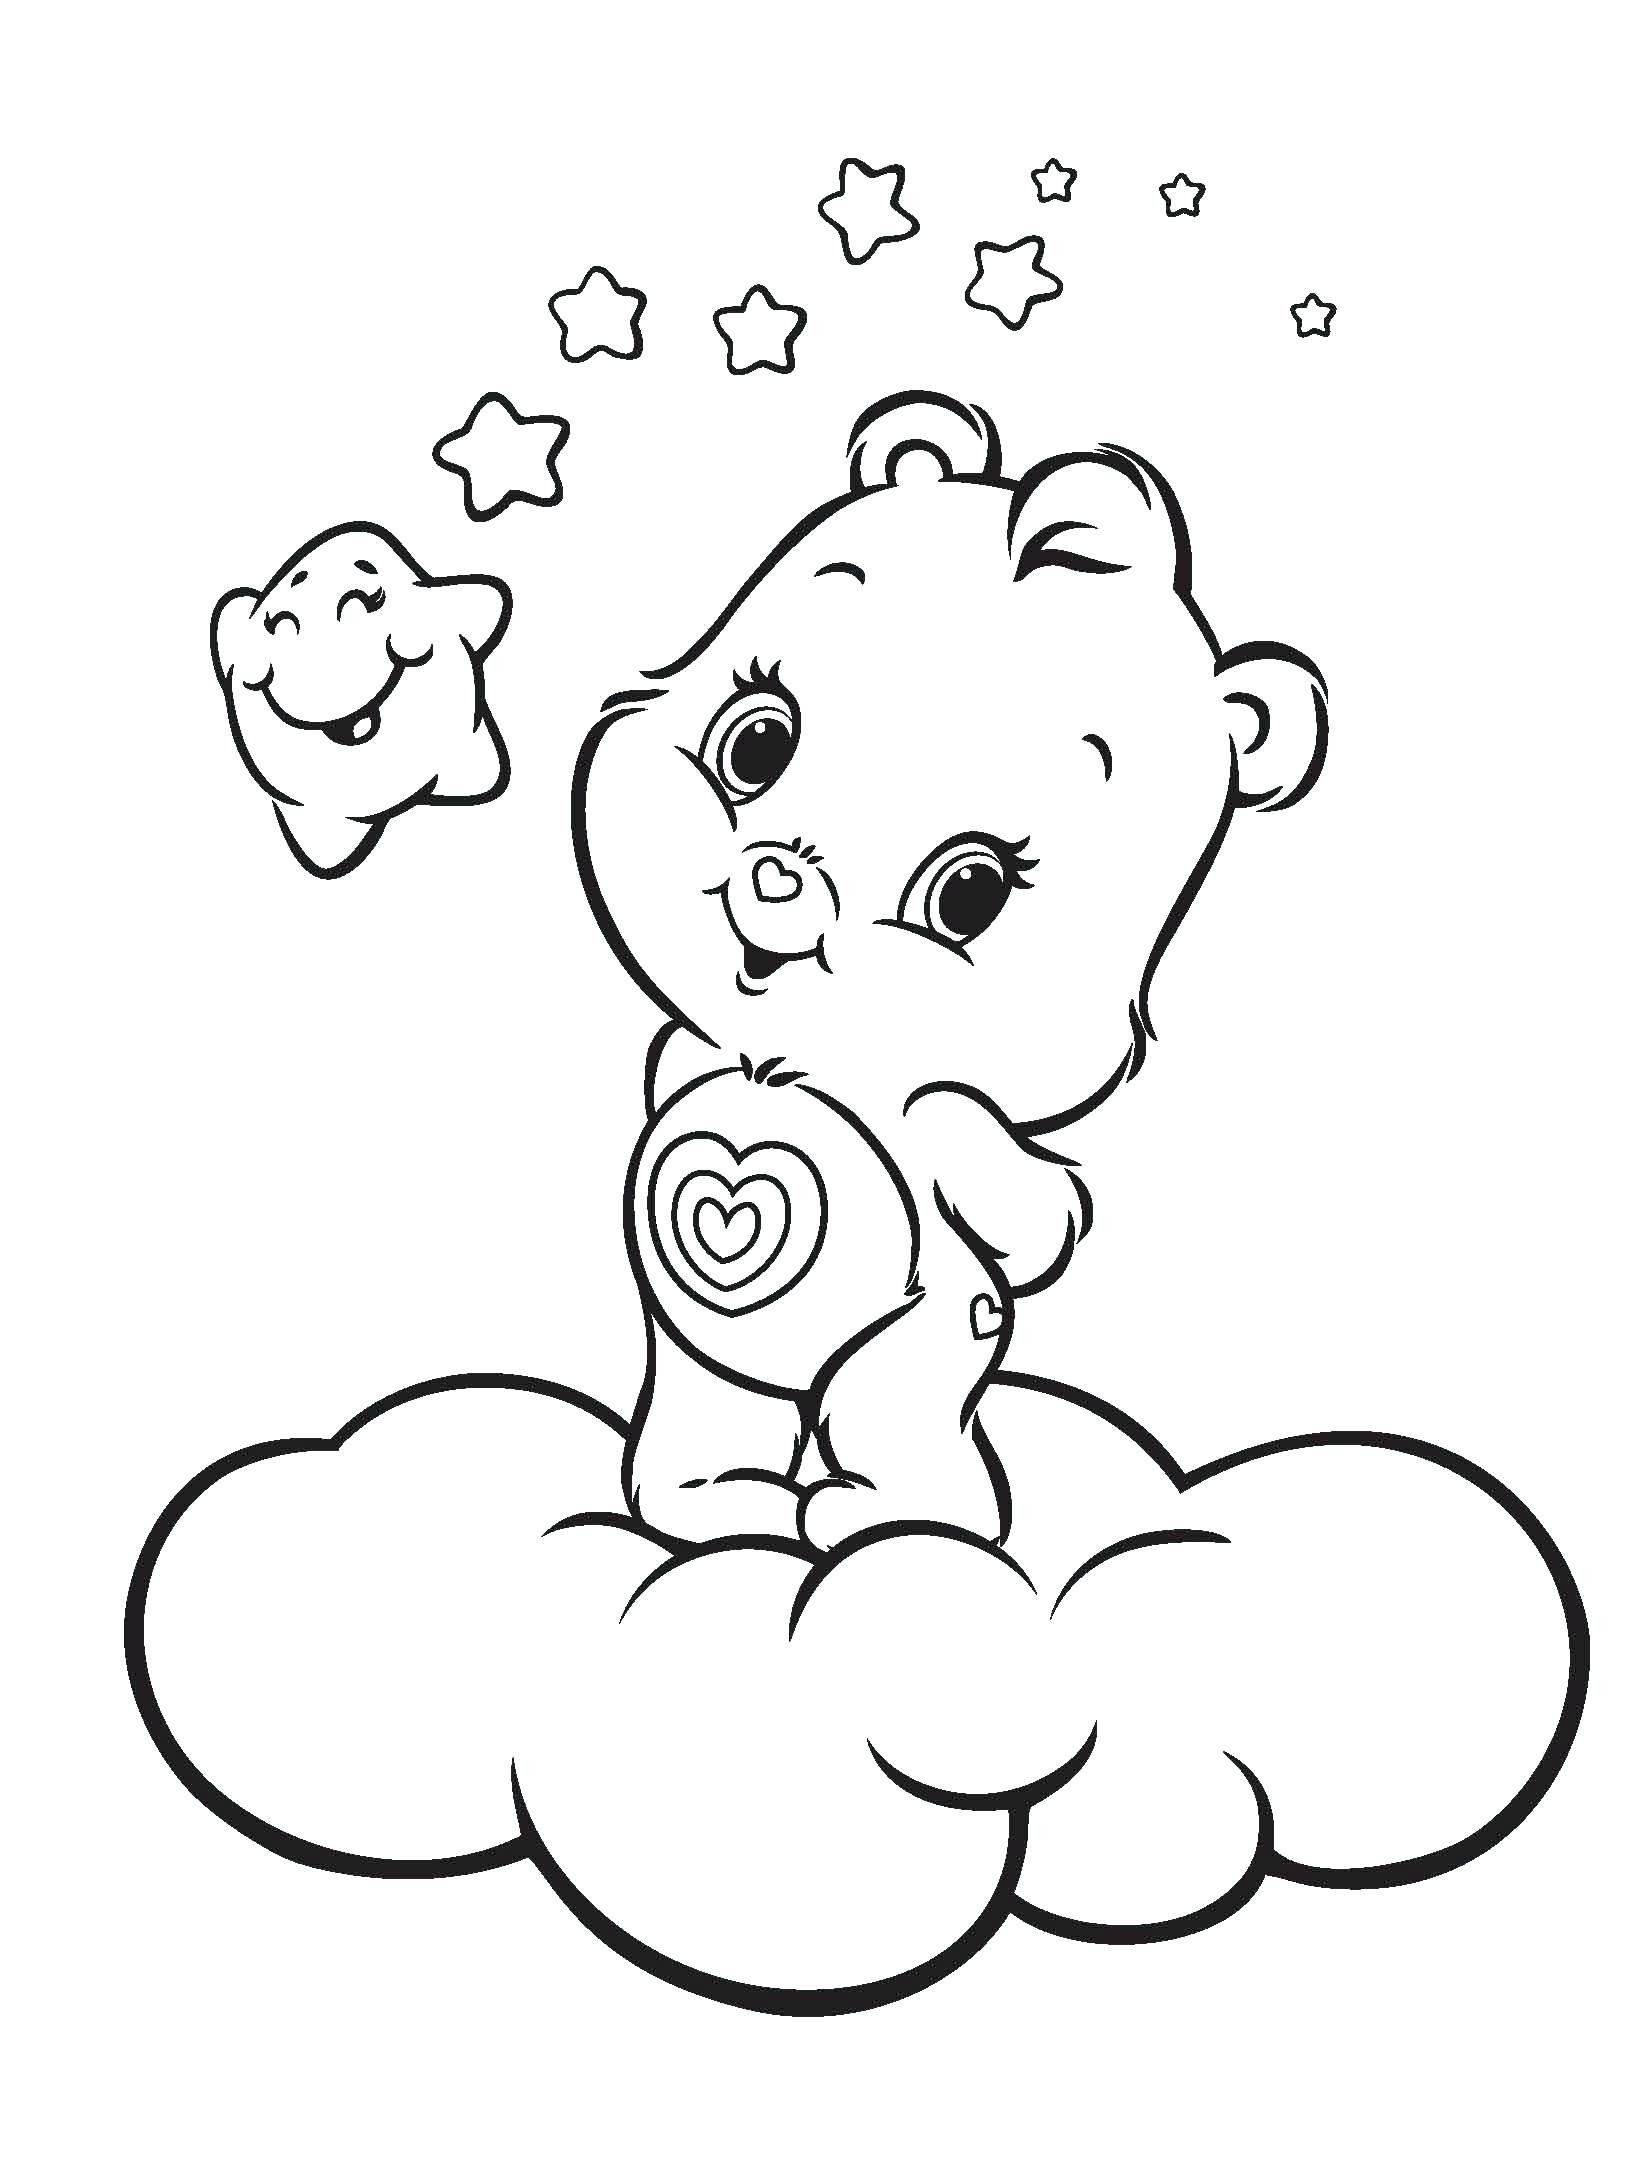 Care Bears Coloring Pages New Good Luck Care Bear Coloring Pages Nemesiscolor Teddy Bear Coloring Pages Baby Coloring Pages Bear Coloring Pages